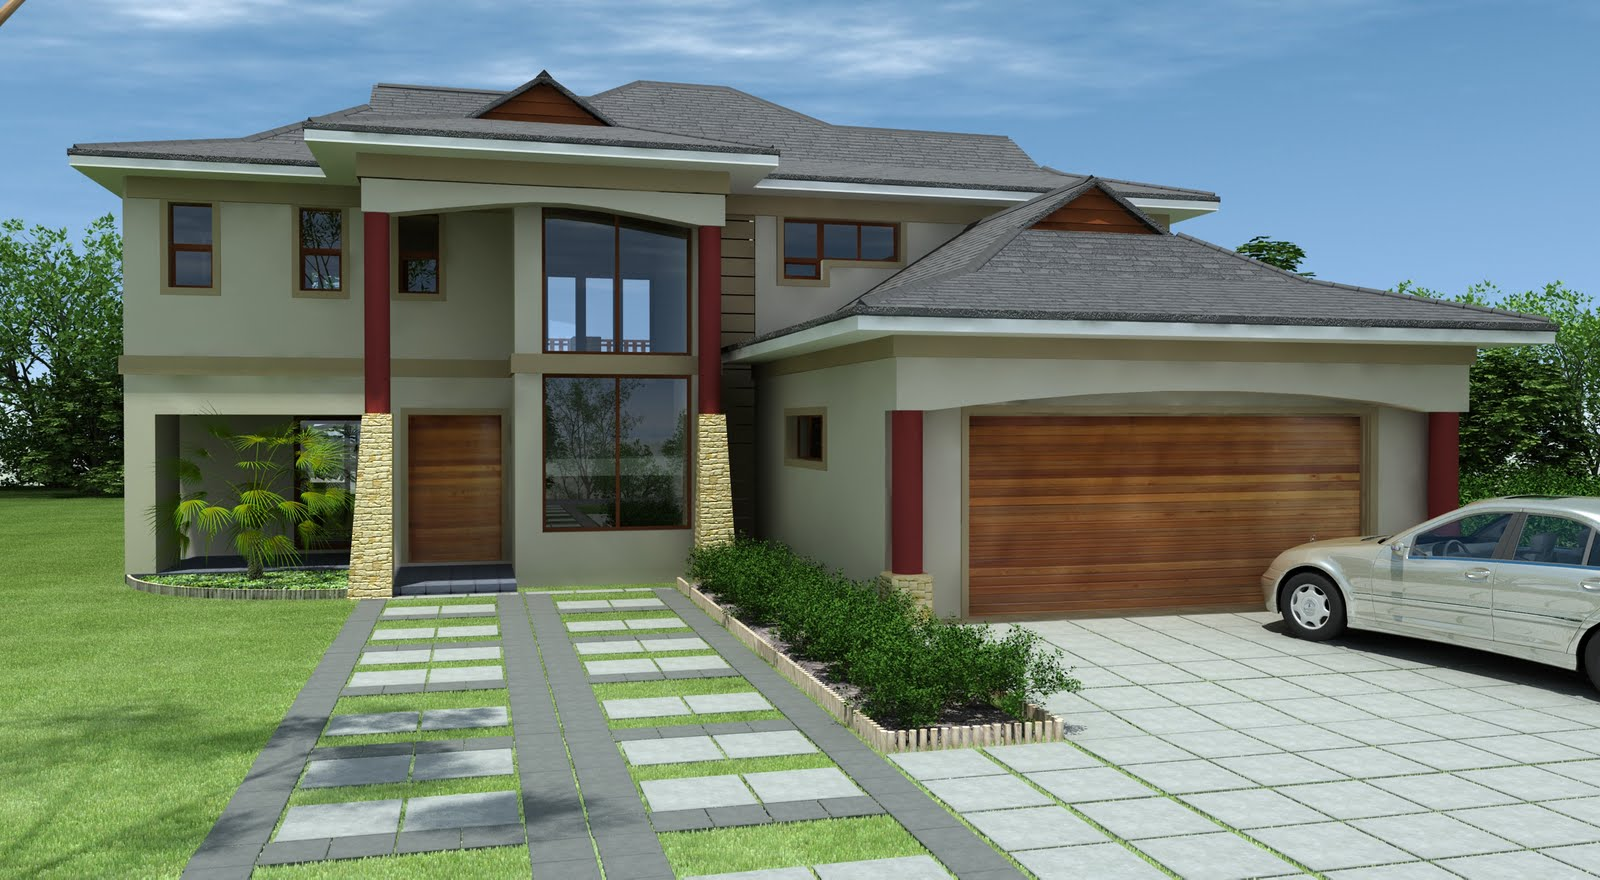 Estate house plans south africa home design and style for Estate home designs